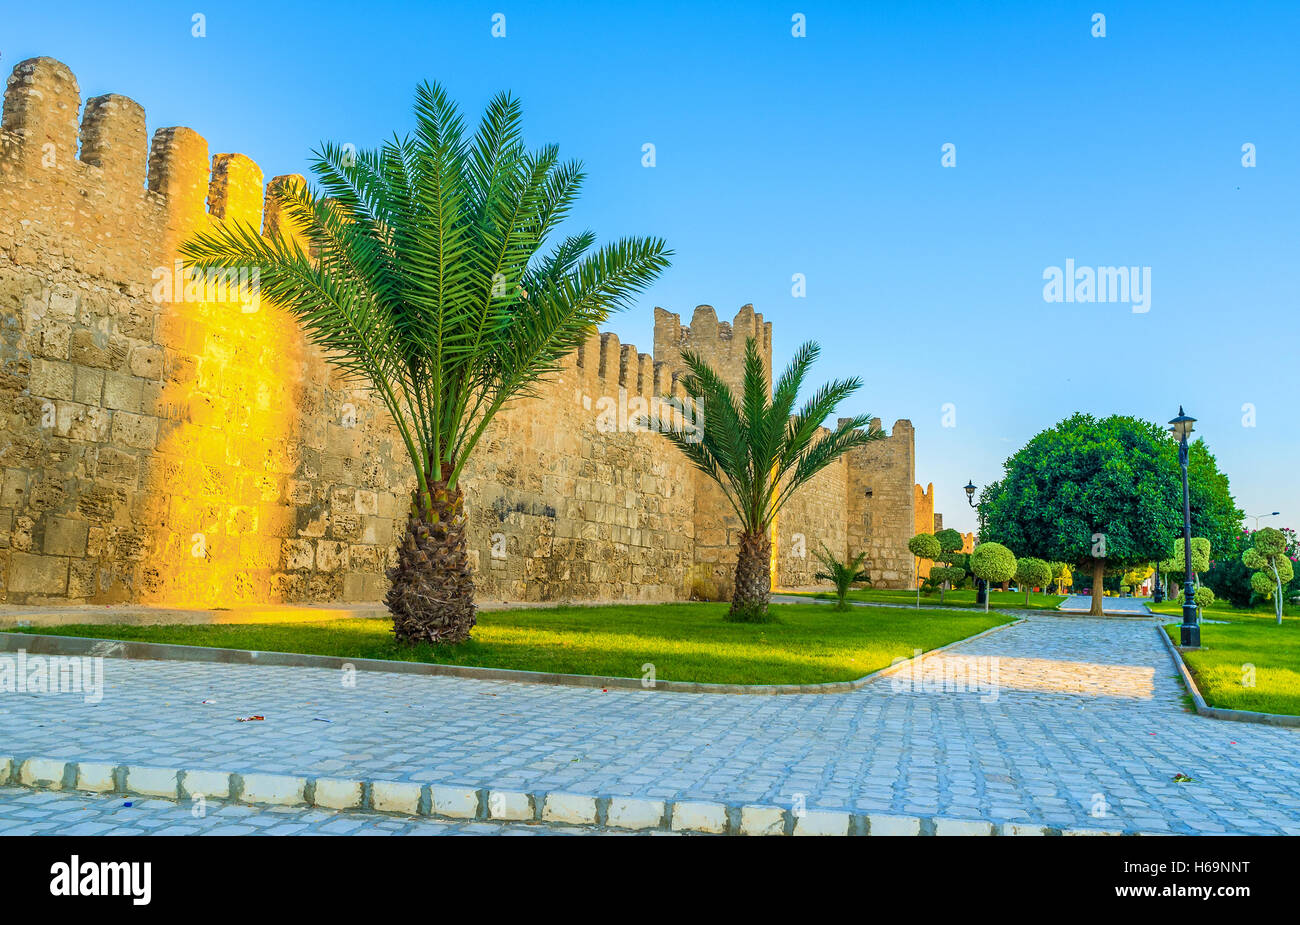 The medieval walls of Sousse Medina look even more beautiful, because of the green garden surrounding them, Tunisia. - Stock Image